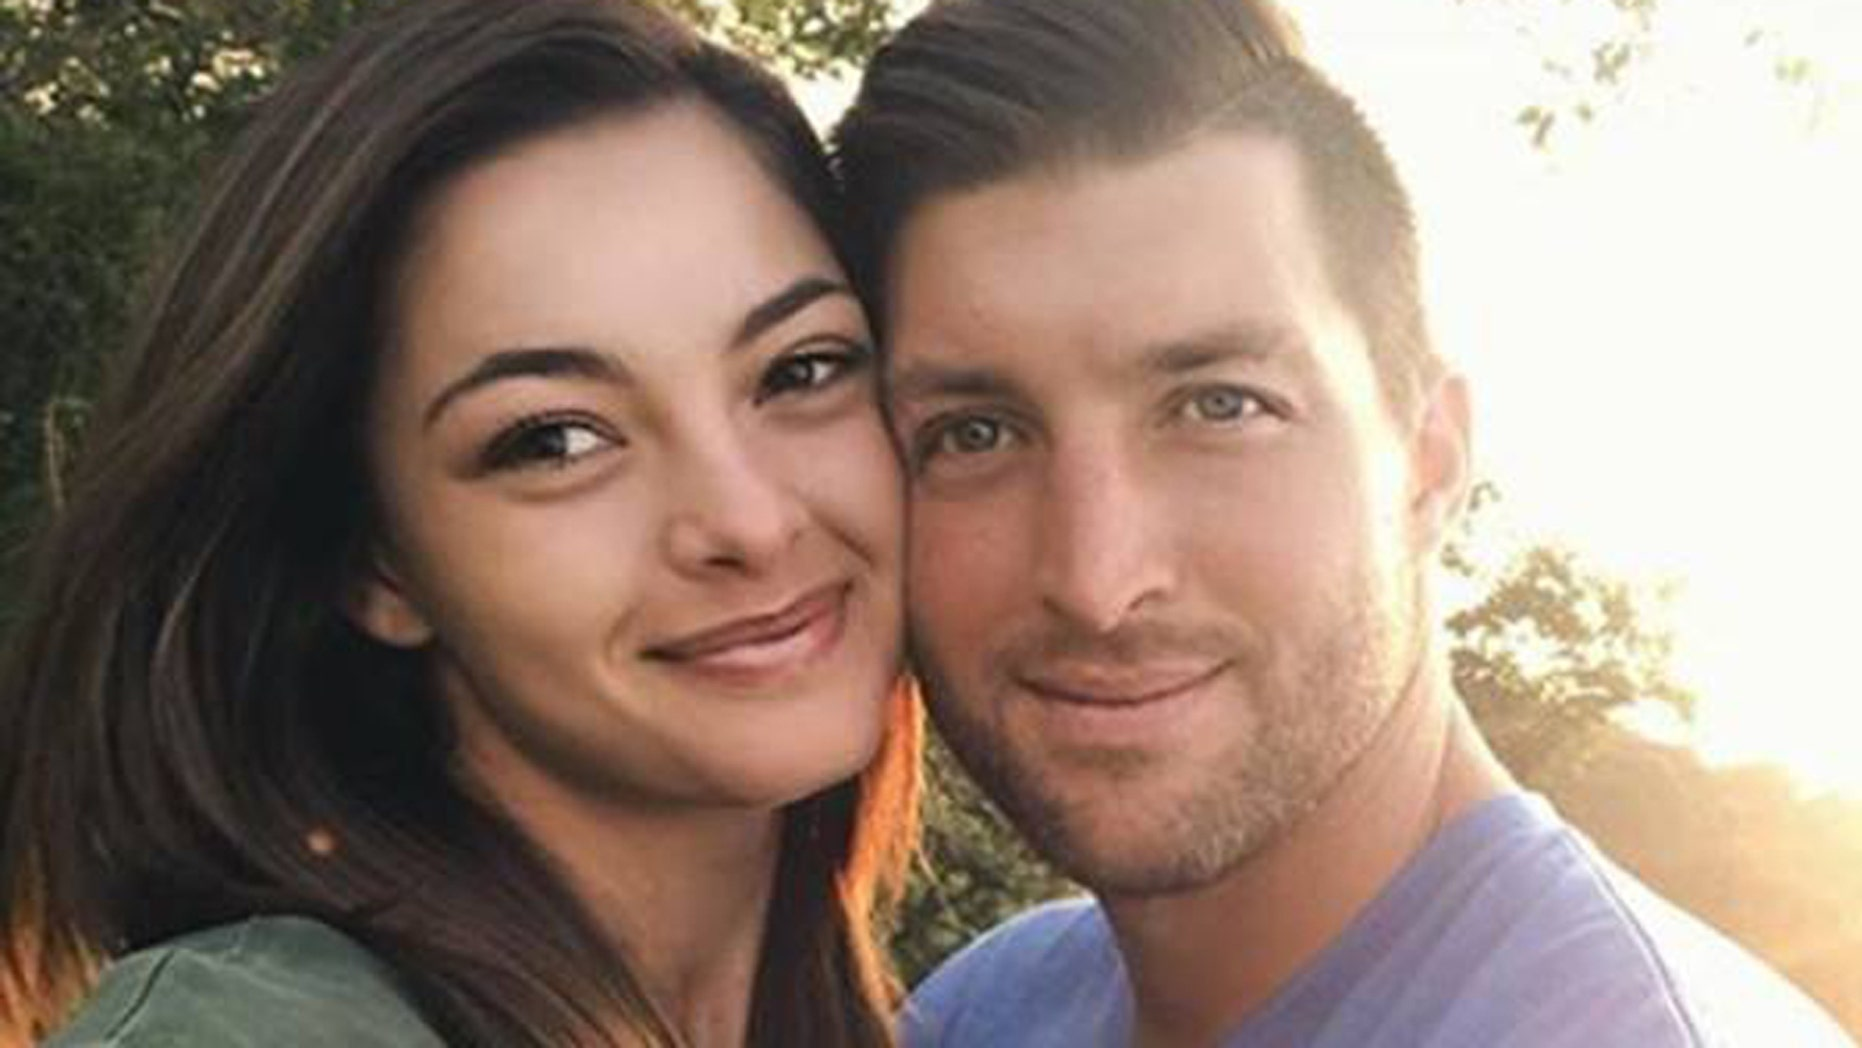 Tim Tebow and his new girlfriend Miss Universe Demi-Leigh Nel-Peters make their relationship official on Instagram.